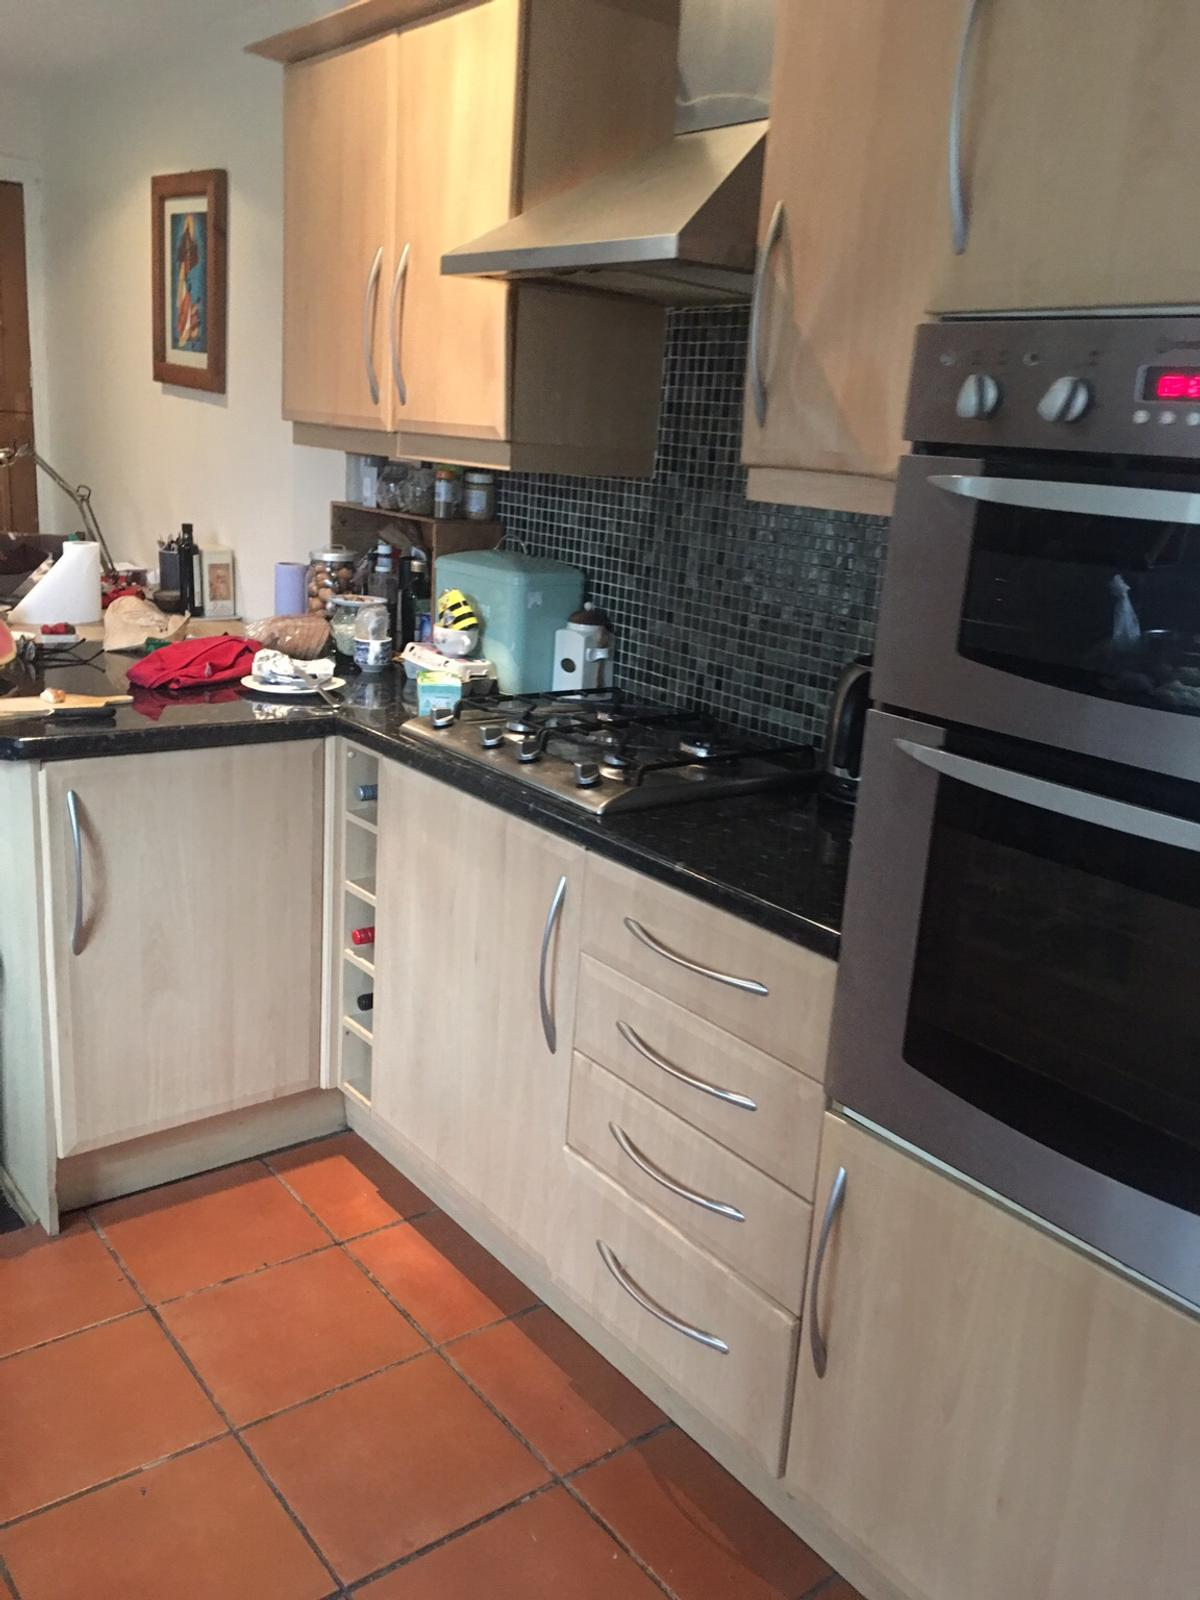 Used Kitchen Unit And Appliances For Sale In E7 London For 300 00 For Sale Shpock